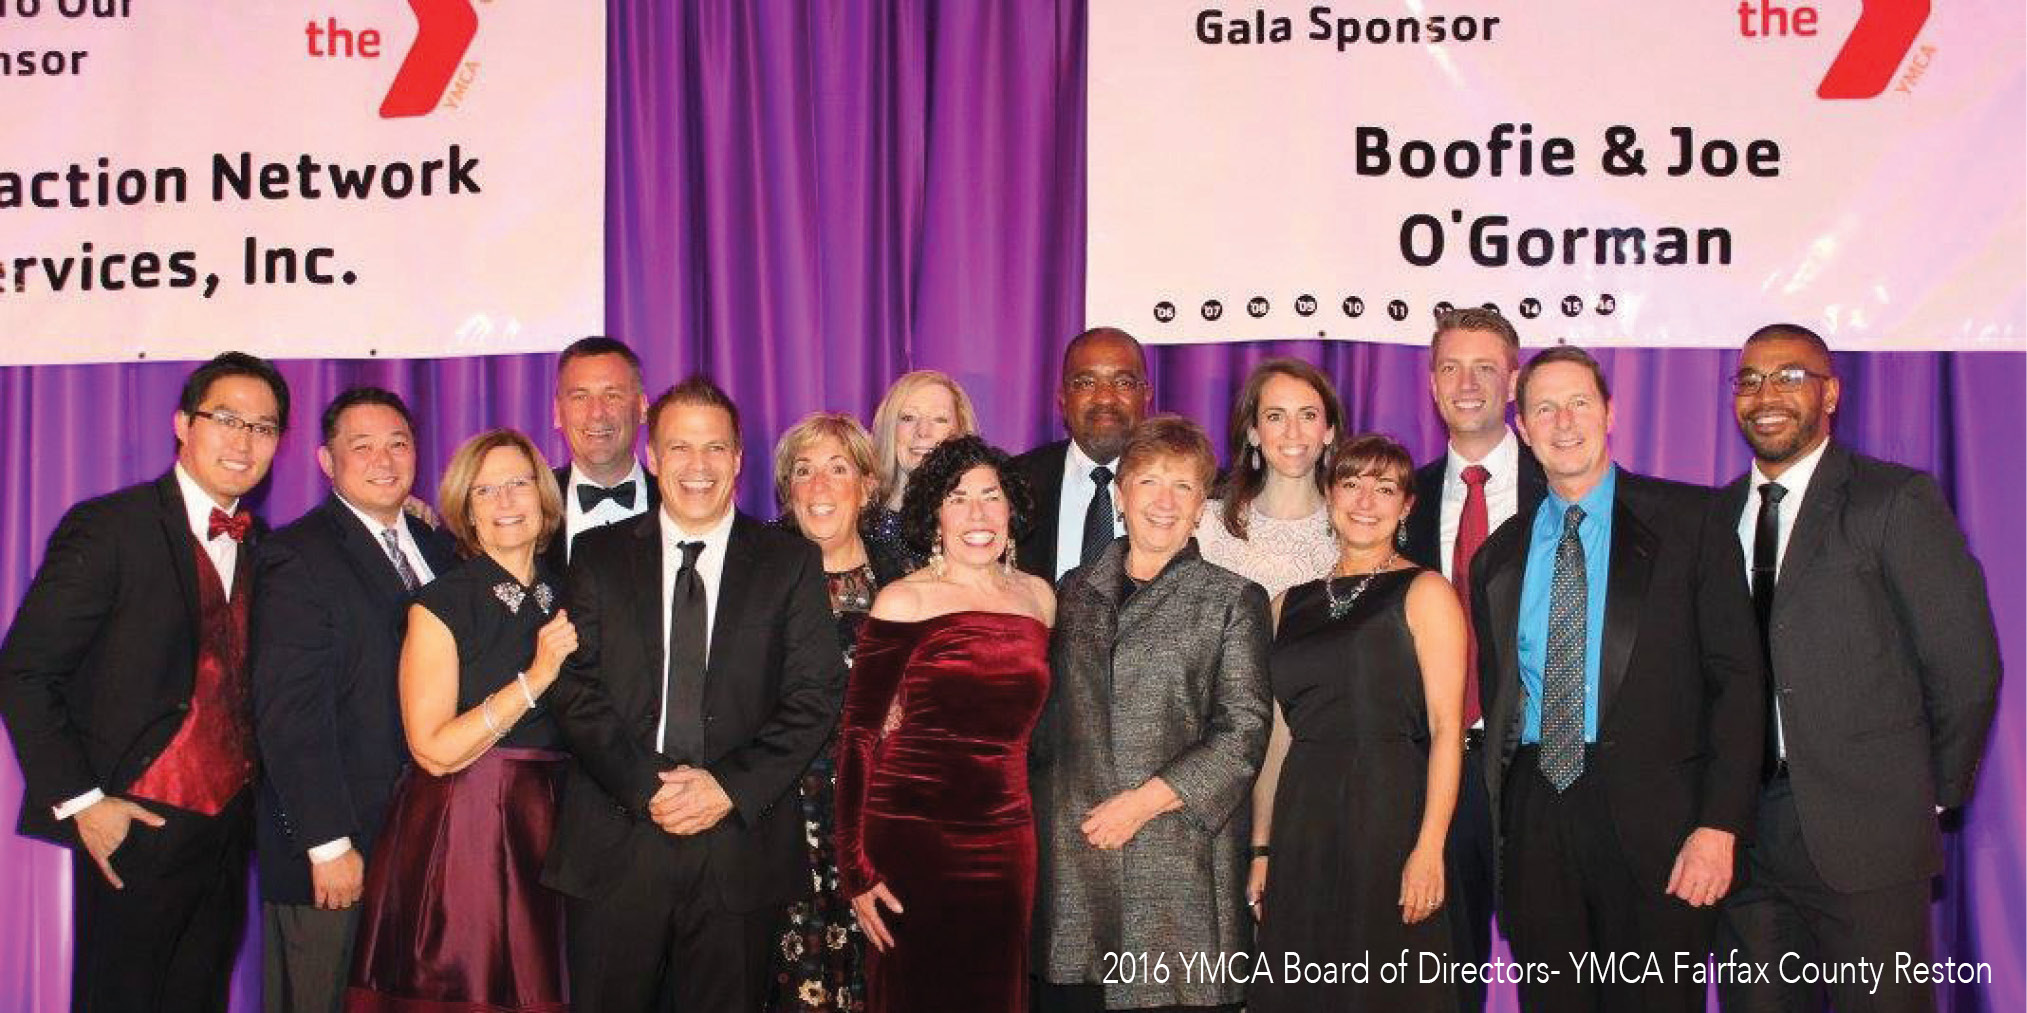 2016 YMCA Board of Directors- YMCA Fairfax County Reston